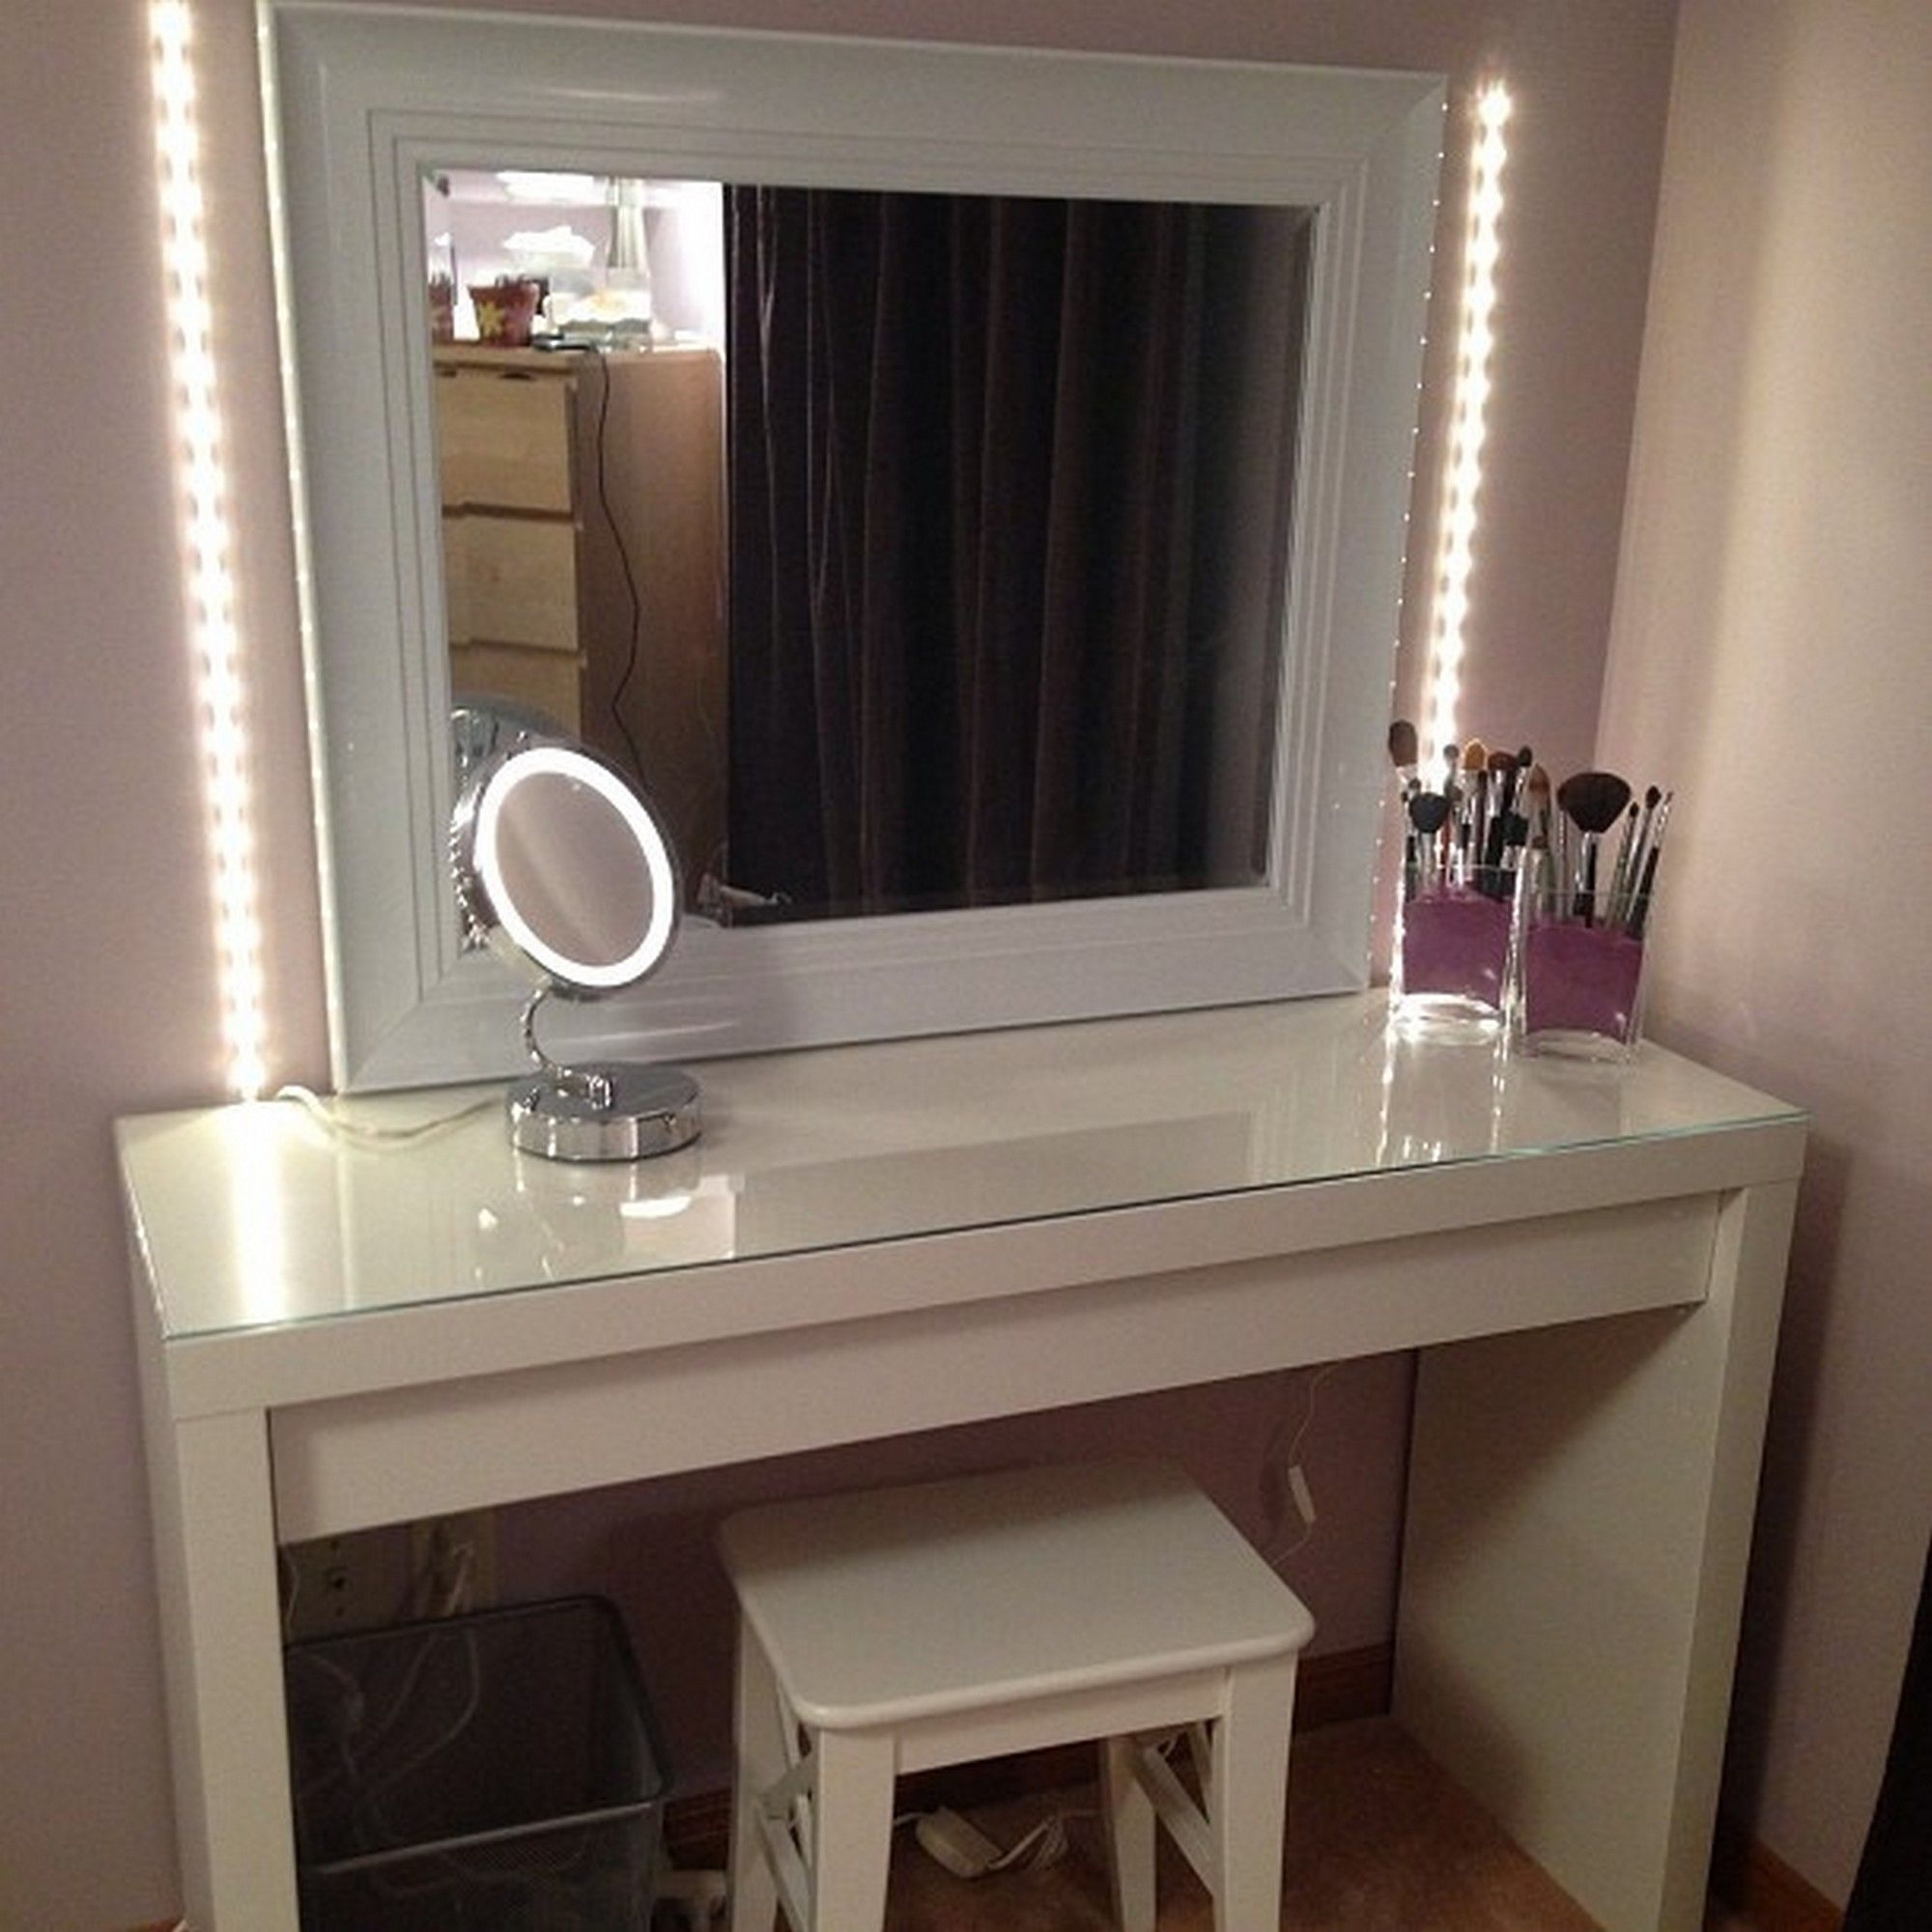 Furniture Diy White Makeup Table With Square Mirror And Chair Makeup Table Pictures Ikea Makeup T Vanity Table With Lights Bedroom Makeup Vanity Beauty Room